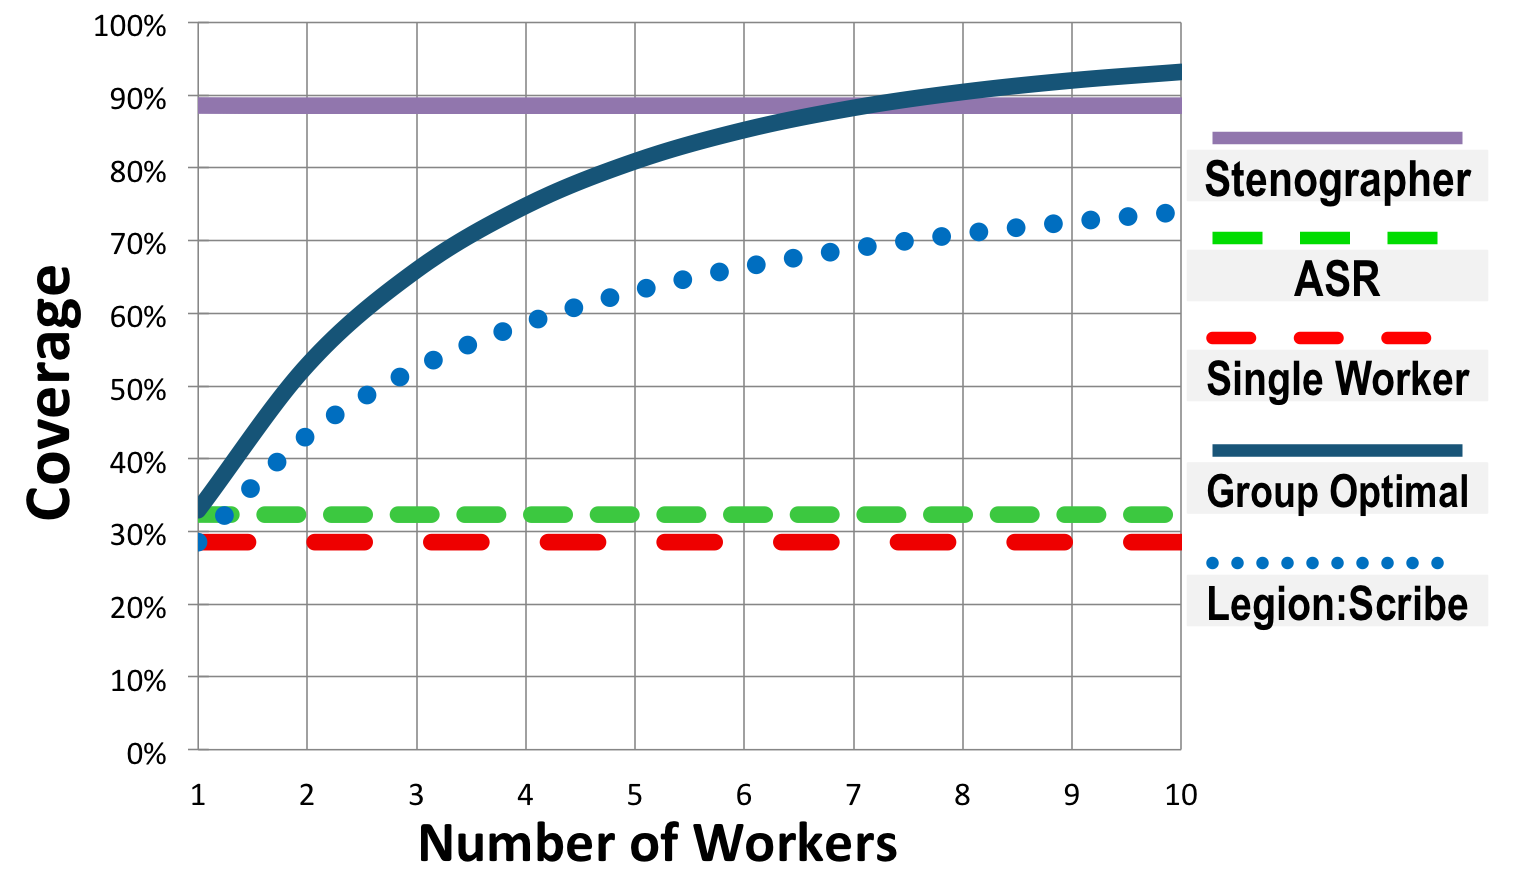 Graph of coverage performance for each captioning method tested